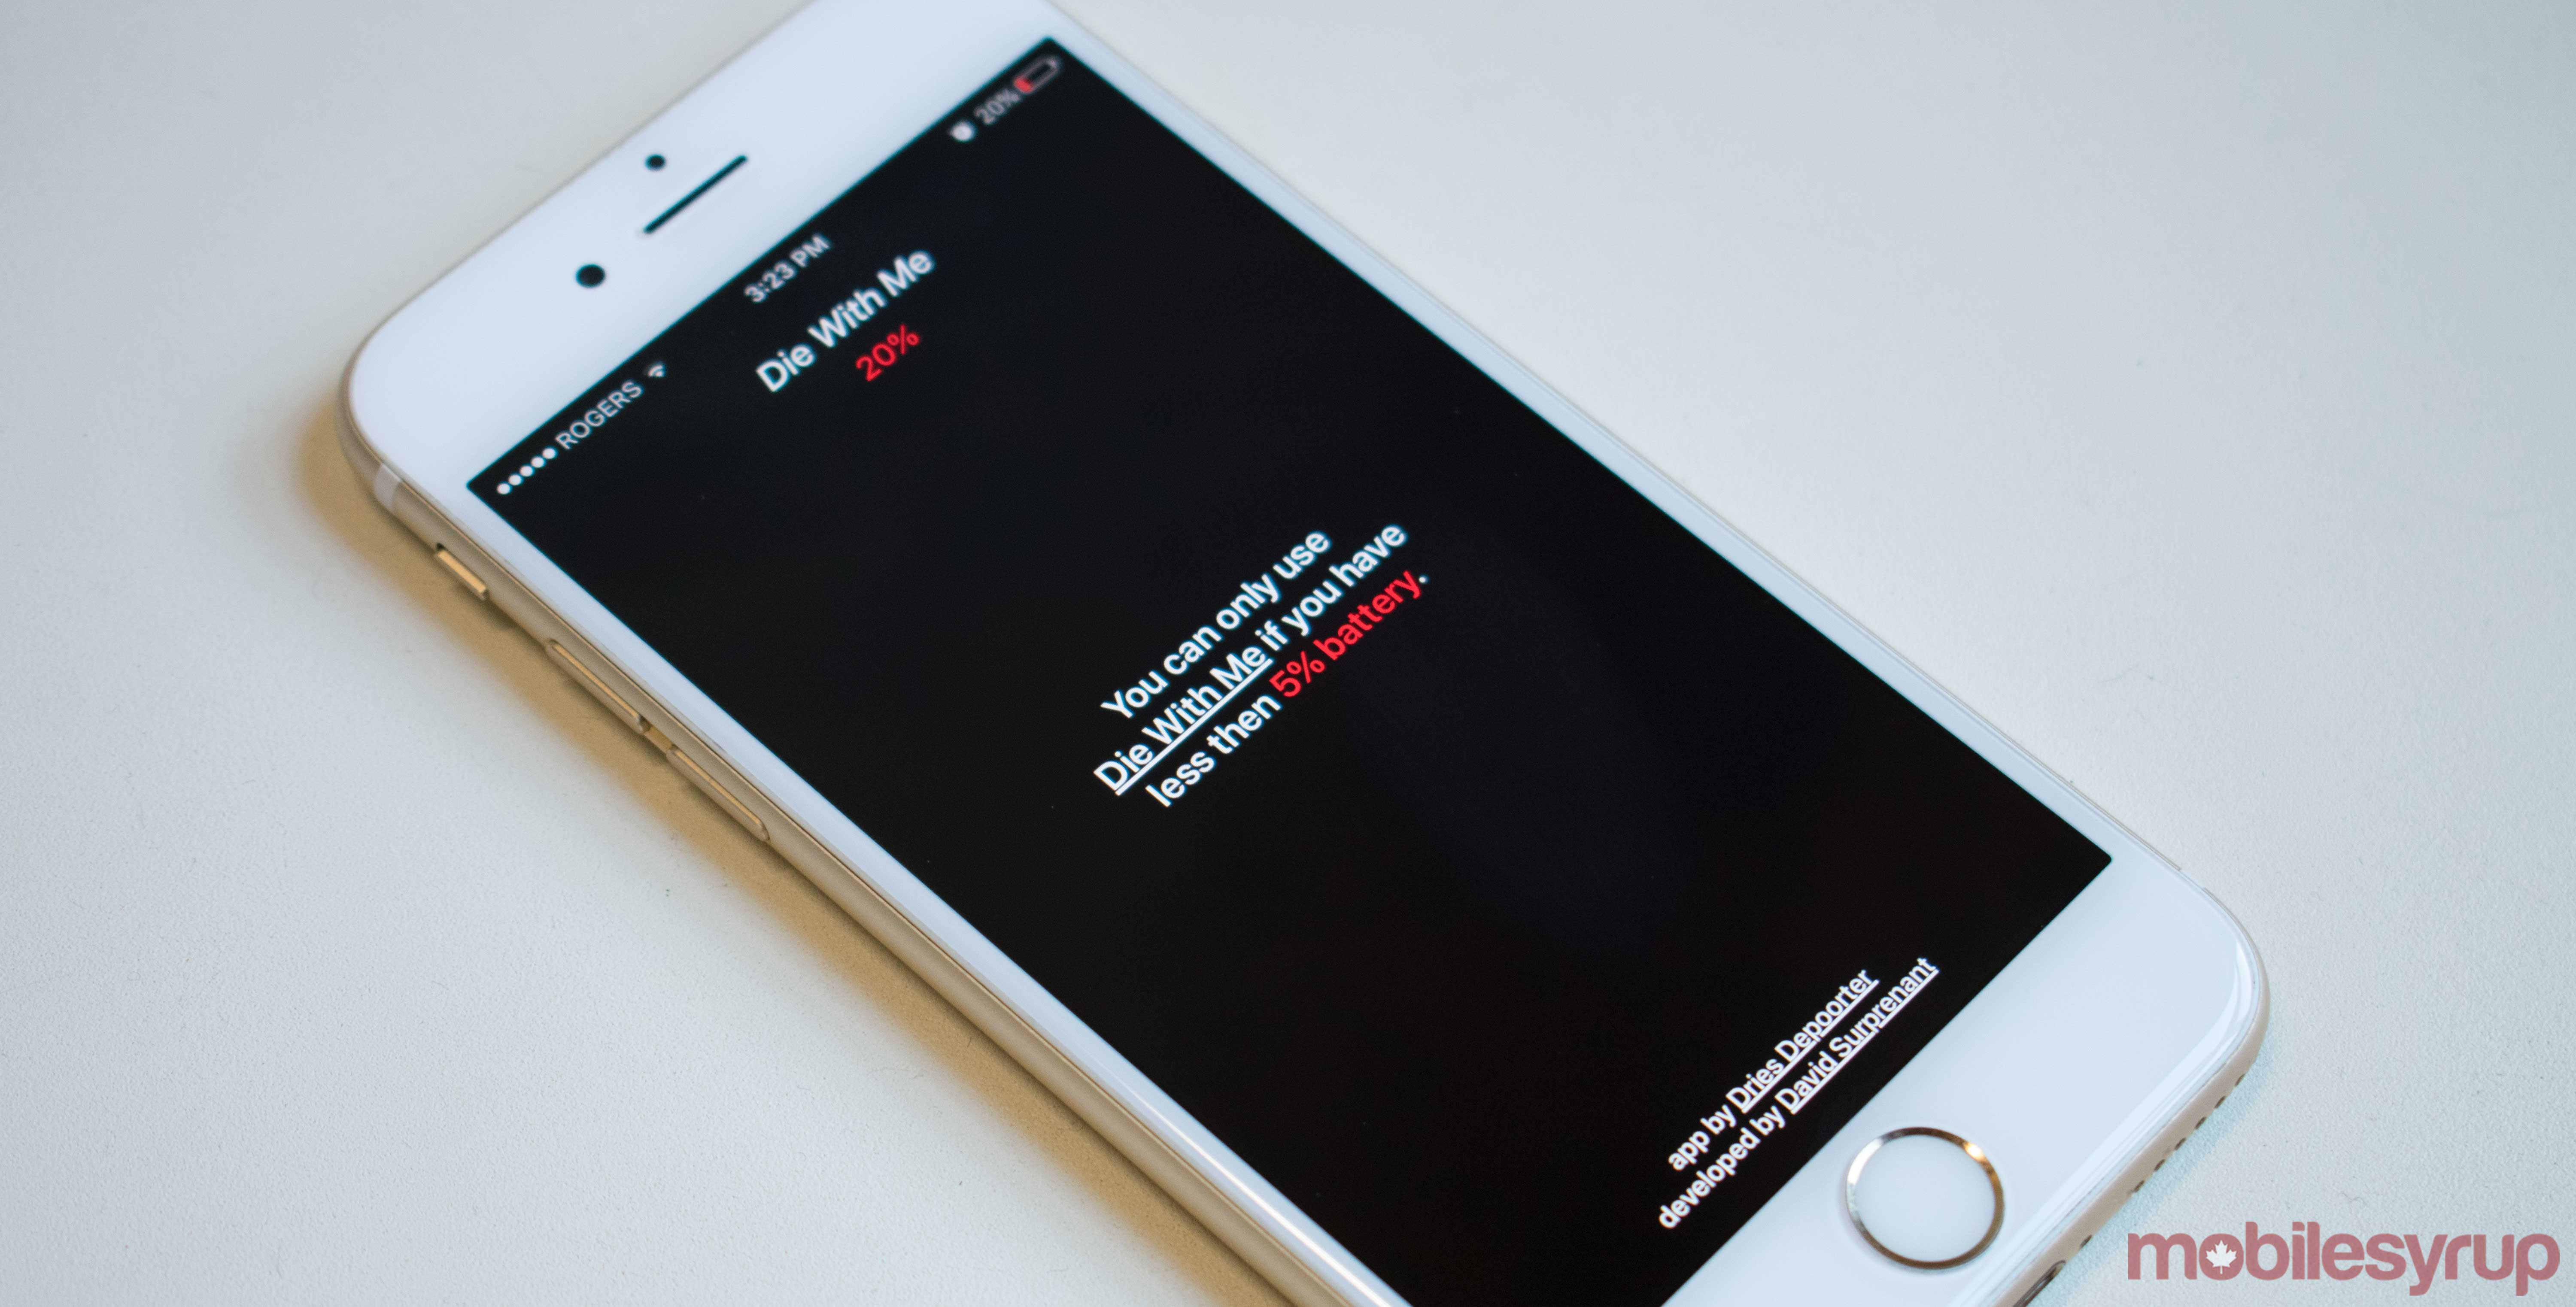 Die With Me's splash screen, denying entry as the phone's battery is not below 5 percent.